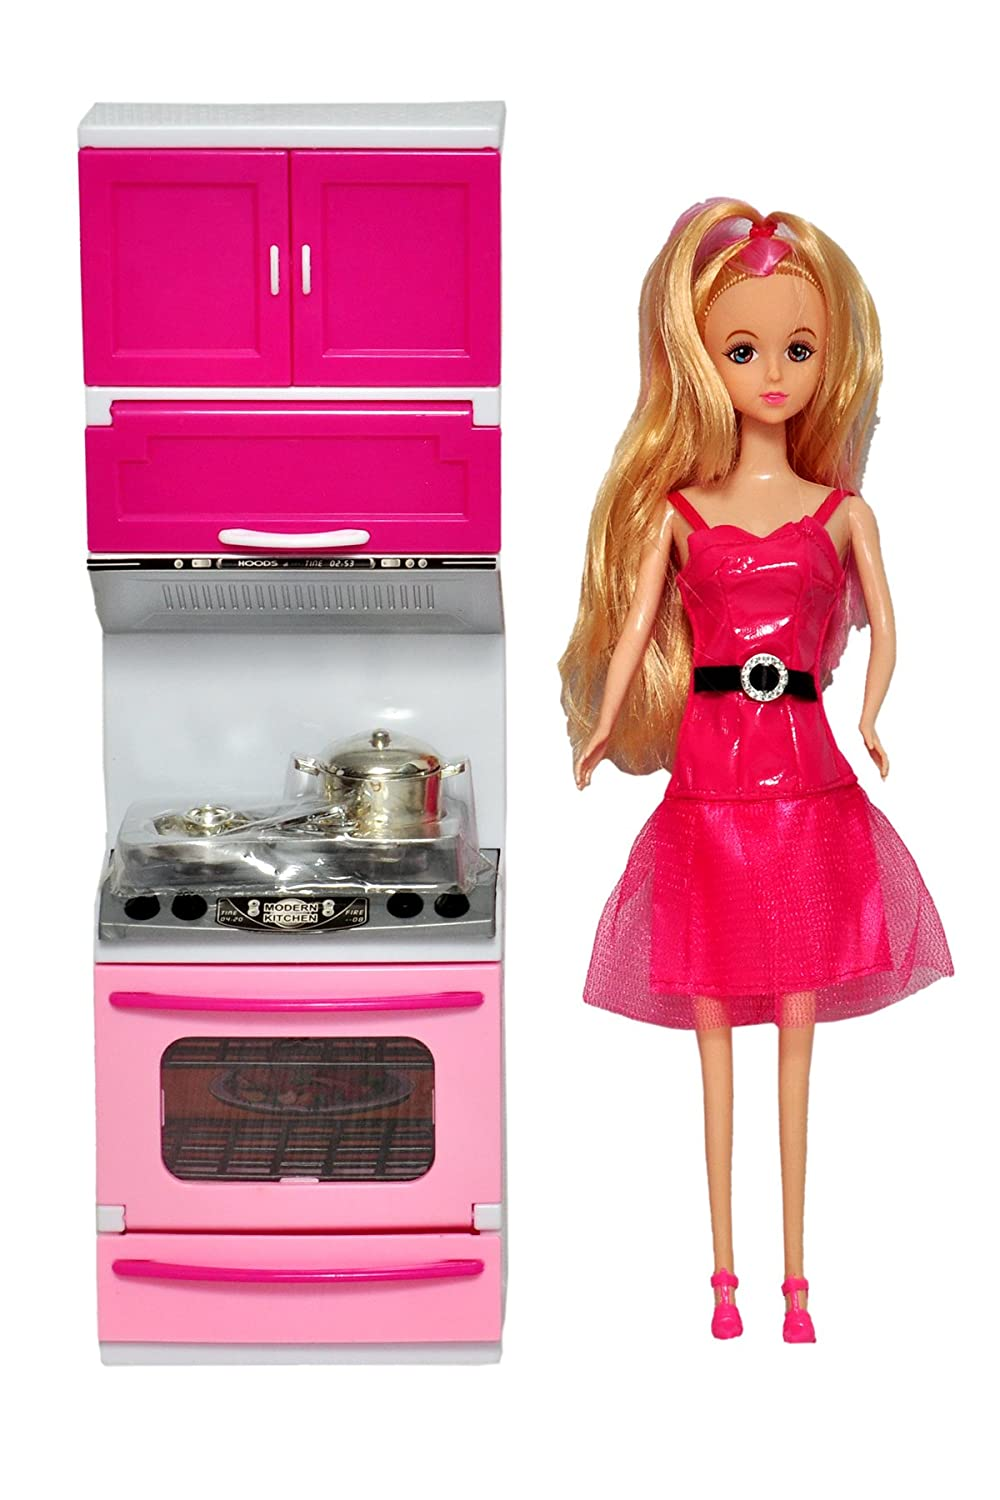 Amazon: Sunshine Battery Operated Modern Kitchen Set with Lights and Sound + Doll @ Rs.499/- (67% OFF)